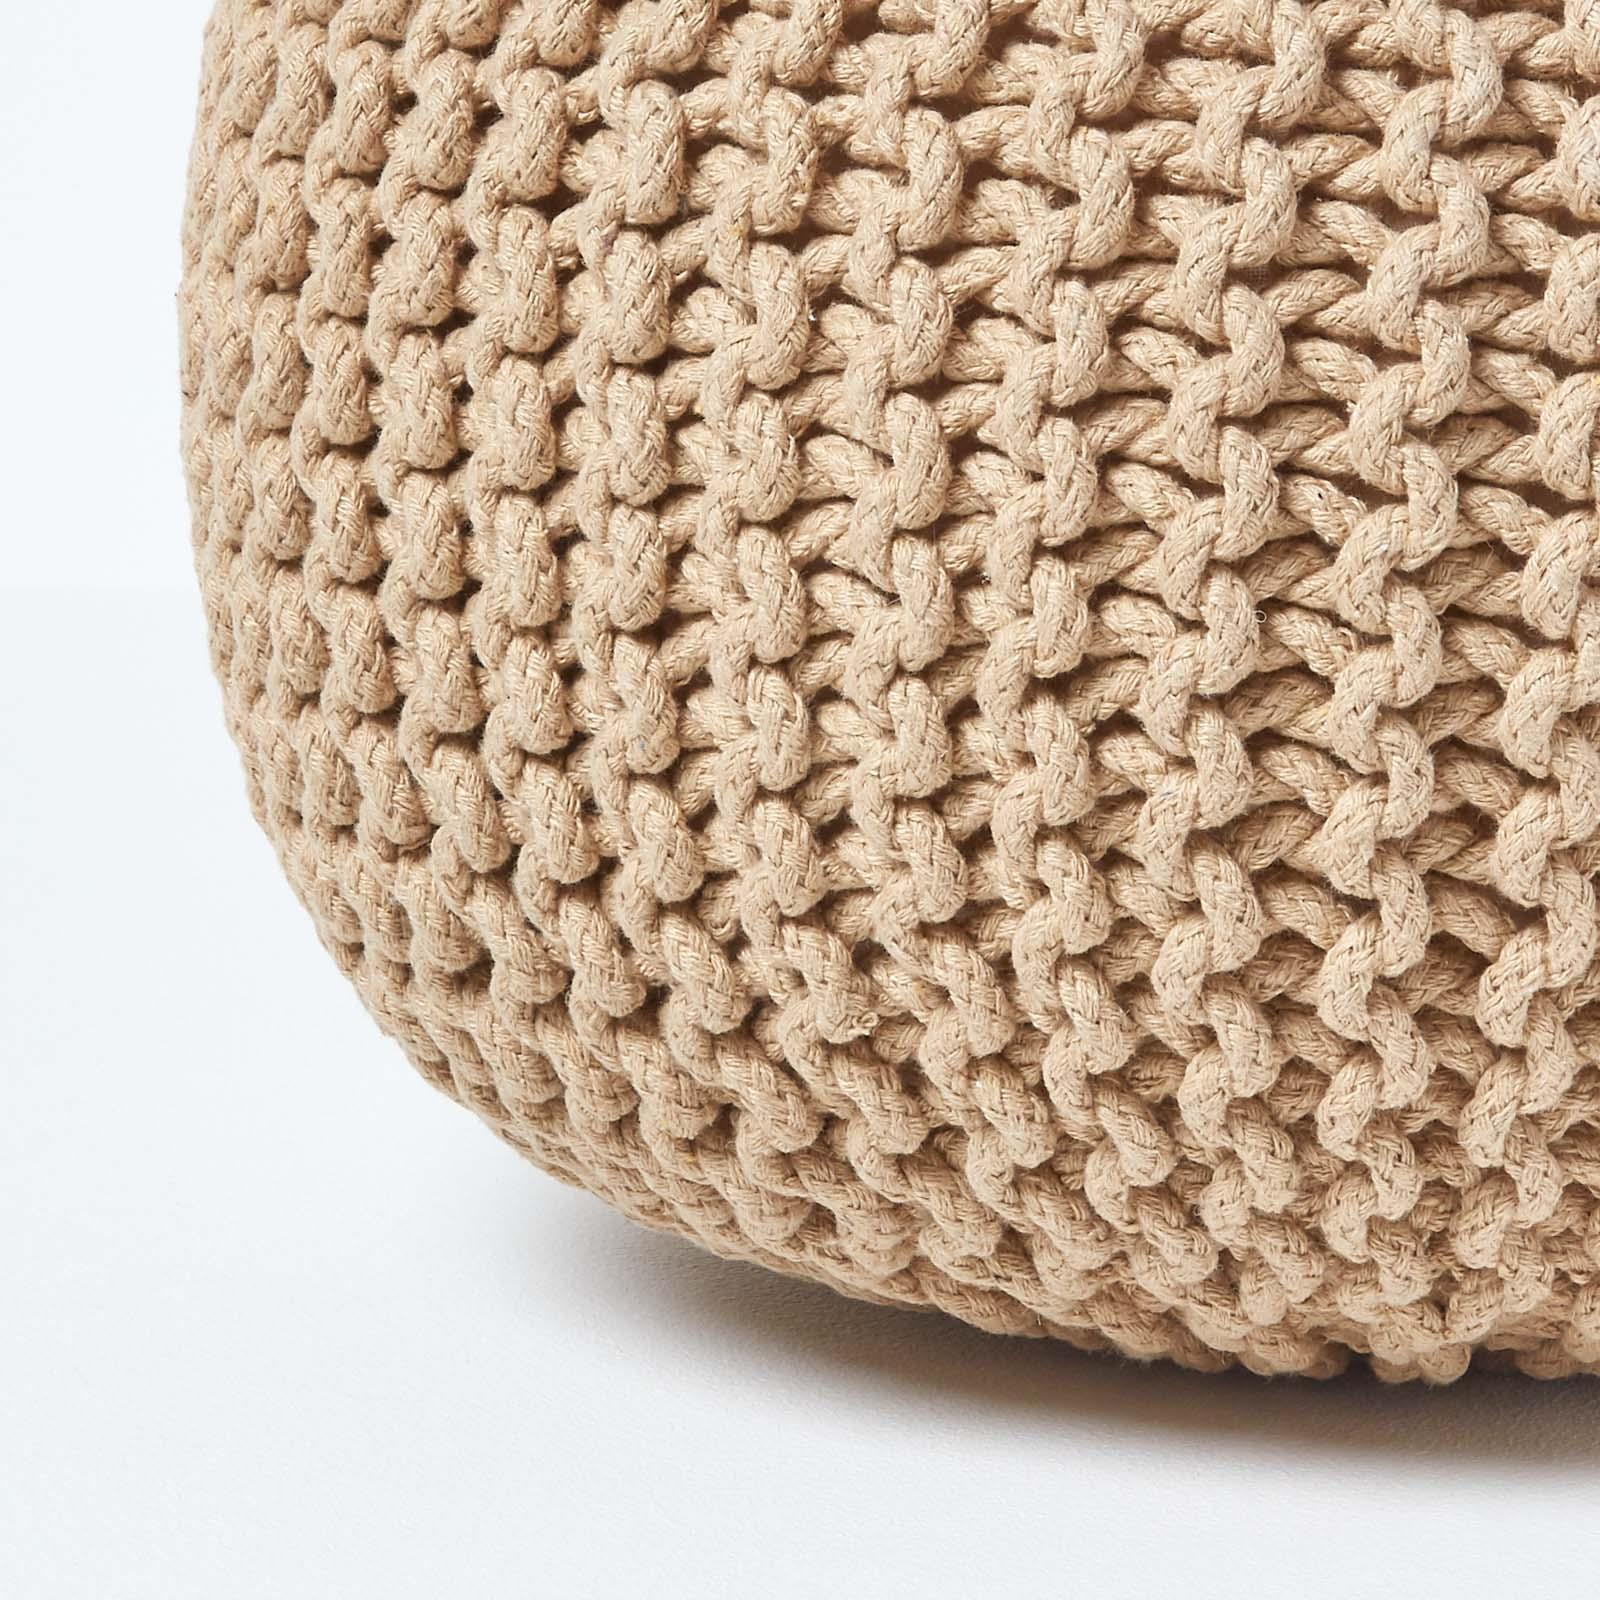 Hand-Knitted-100-Cotton-Pouffes-Round-Sphere-Or-Cube-Square-Chunky-Footstools thumbnail 82